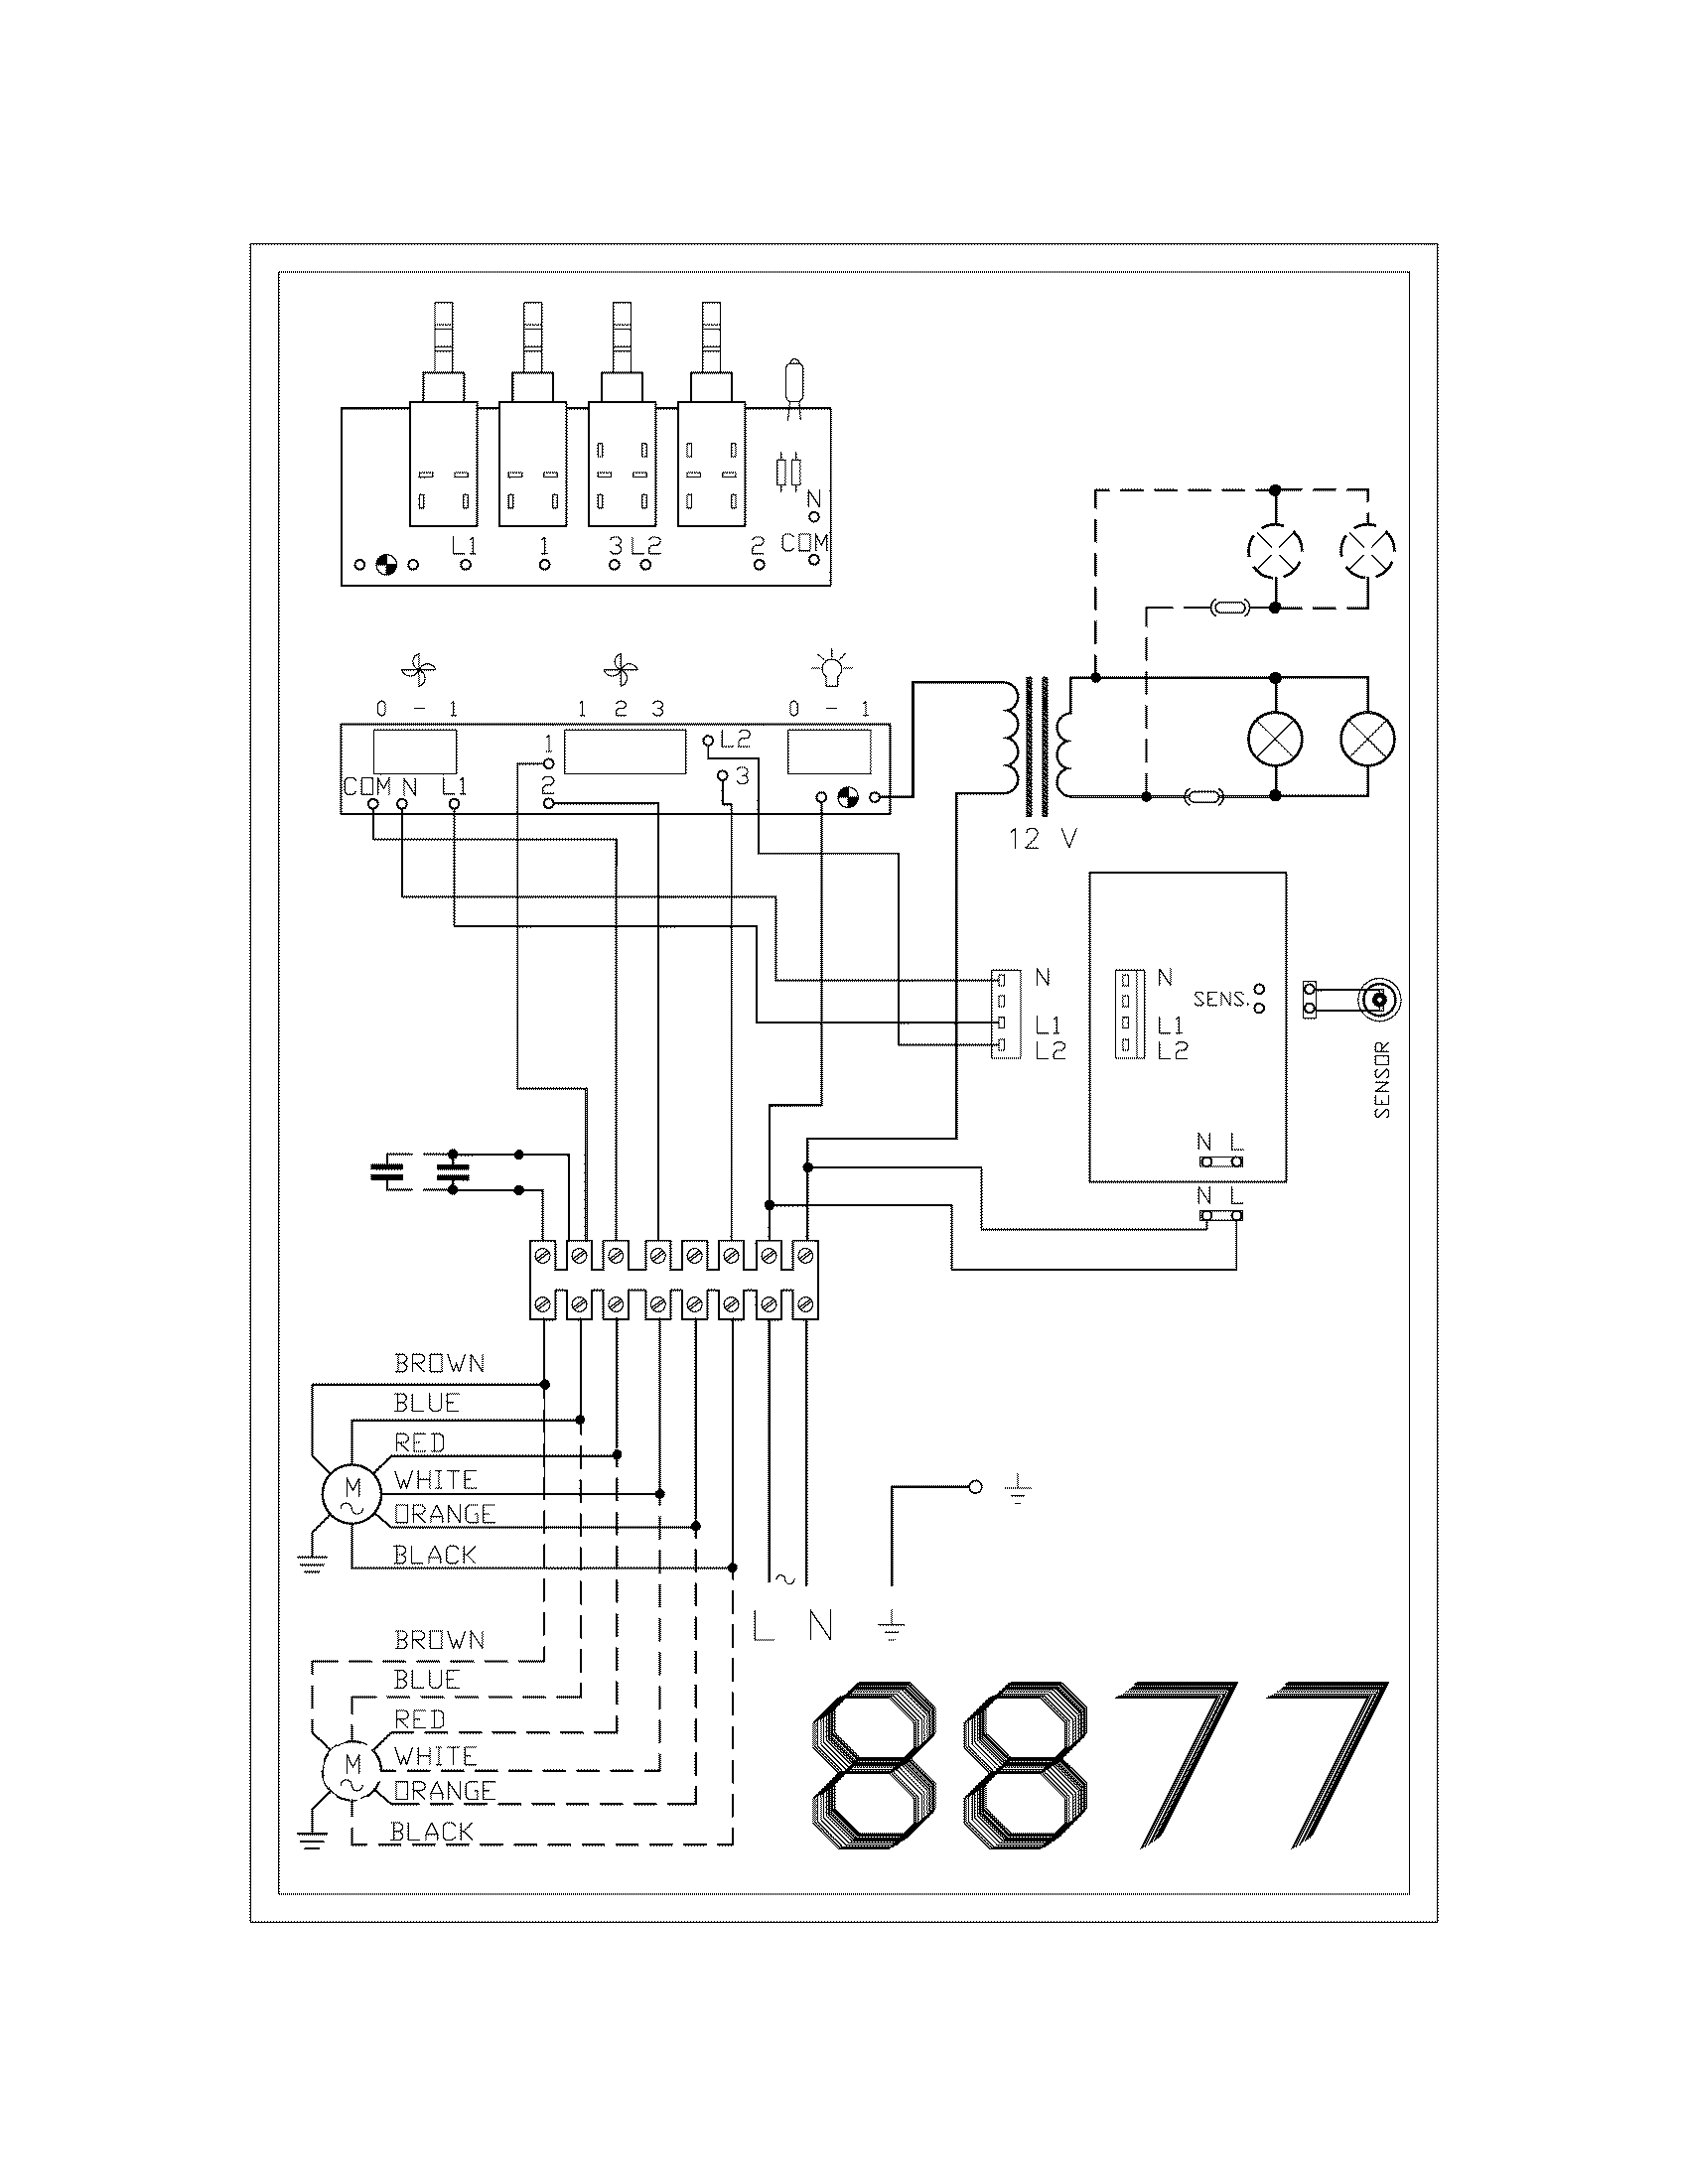 3tc Wiring Diagram Electronic Circuit Diagrams Internet Of Things 450 43le And Engine Tc On